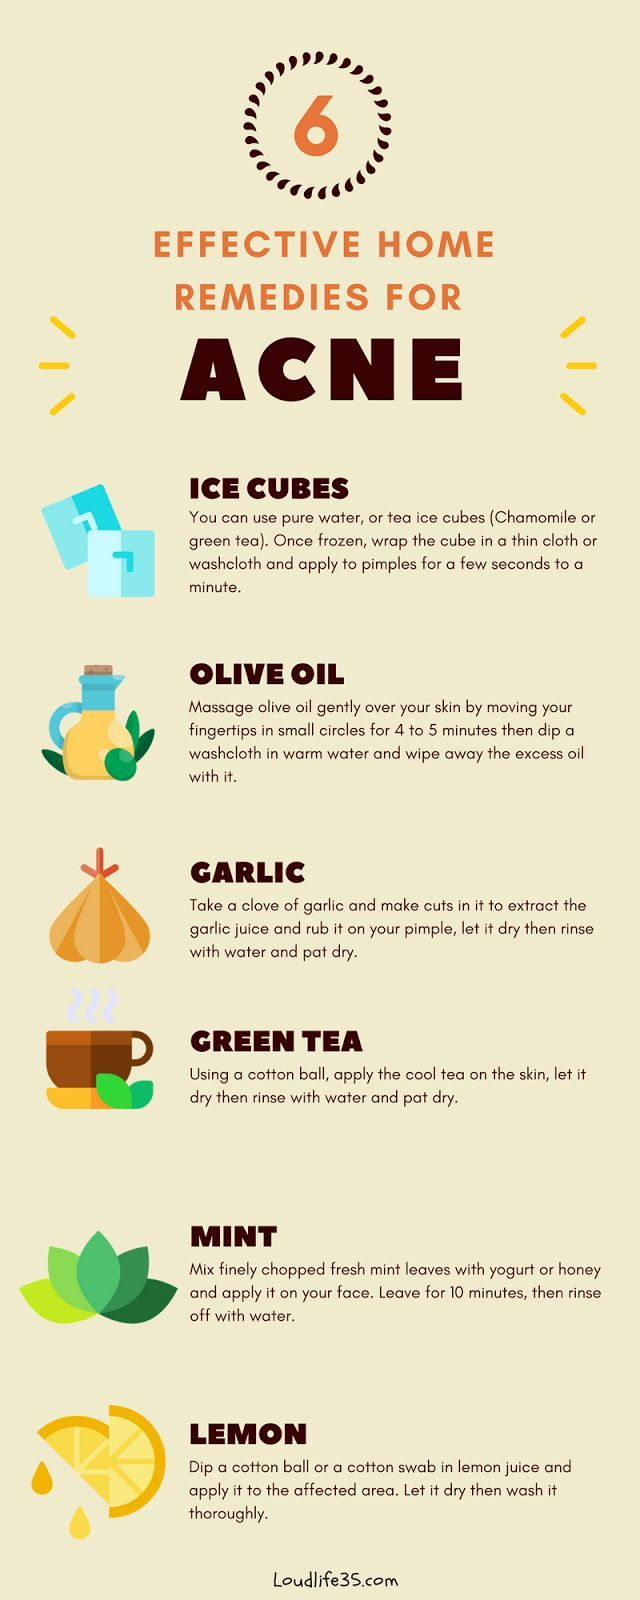 6 Effective Home Remedies For Acne You Need To Try Loud Life Acne Remedies Home Remedies For Acne How To Treat Acne